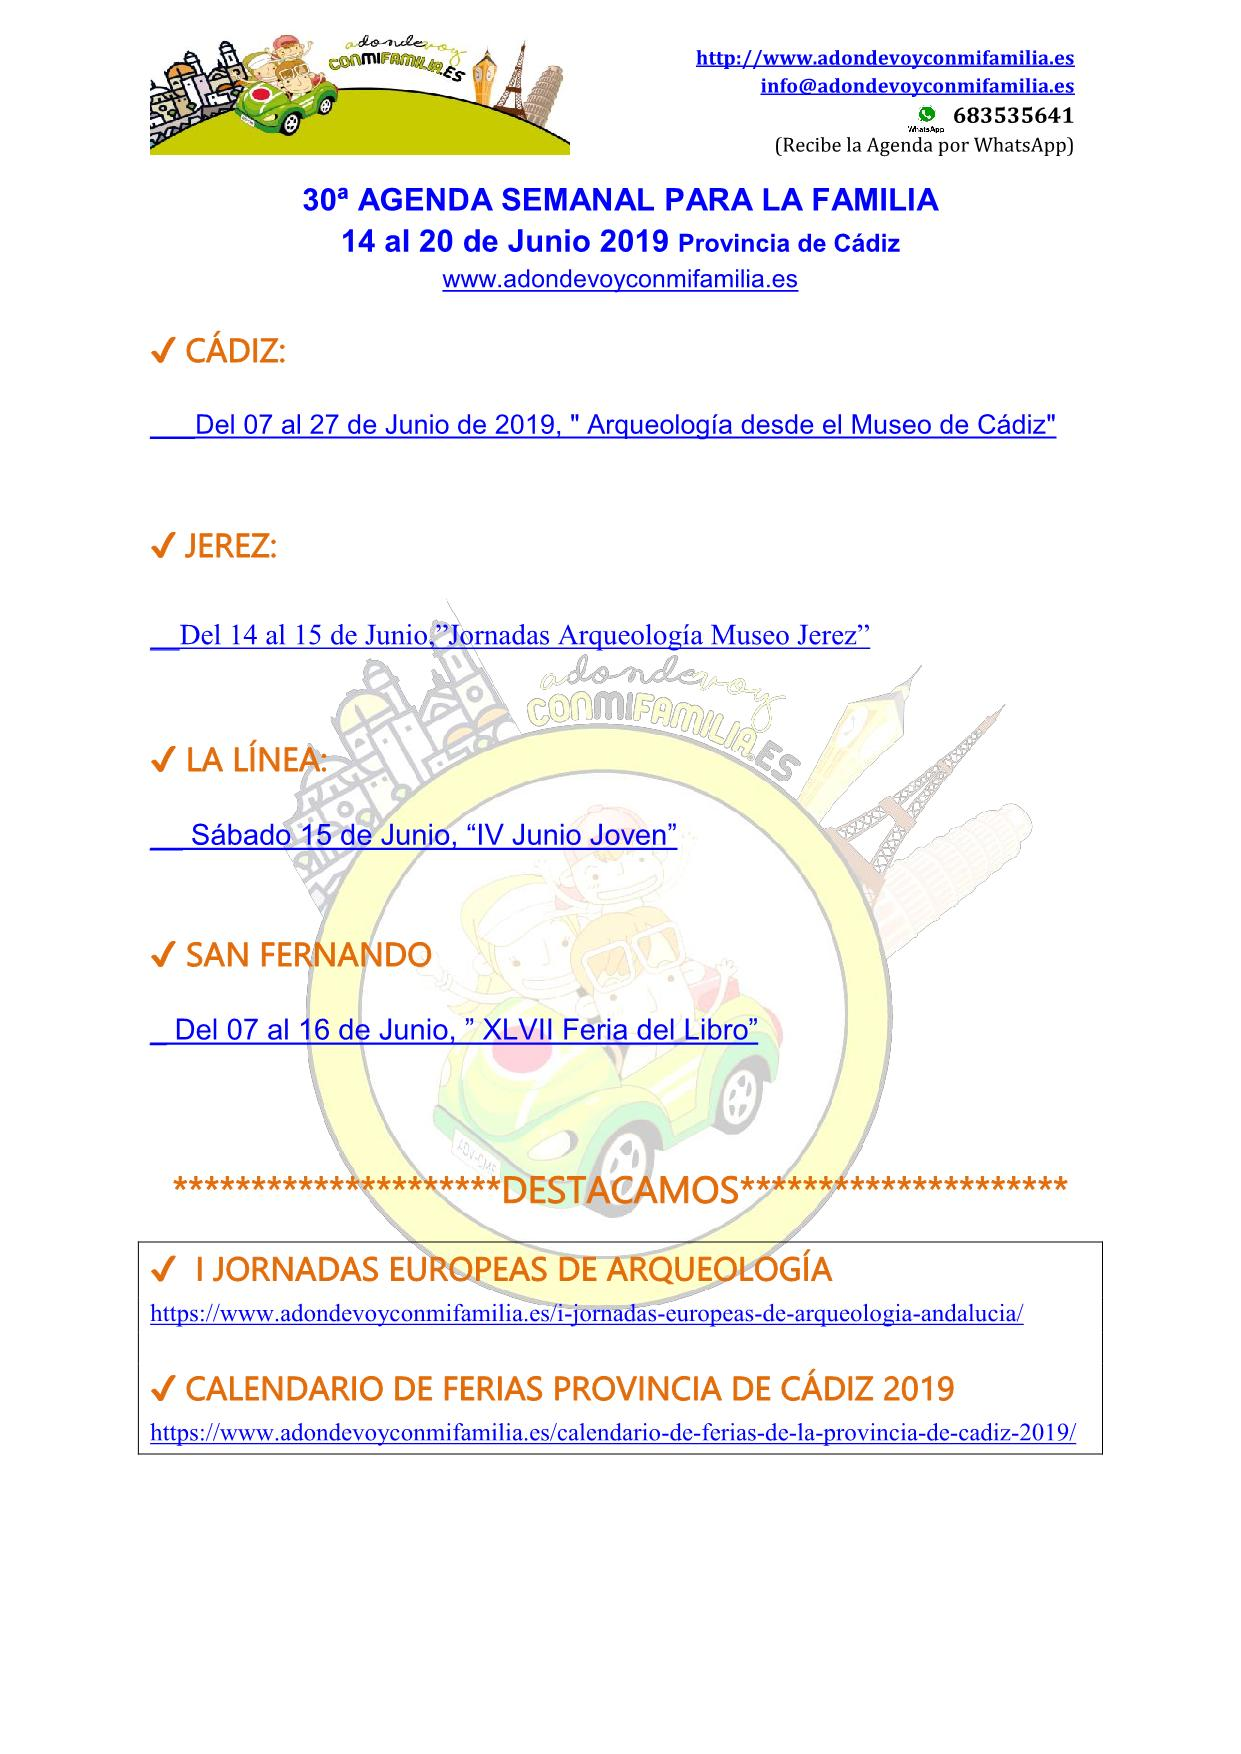 030 Agenda semanal familiar 14 al 20 Junio 2019